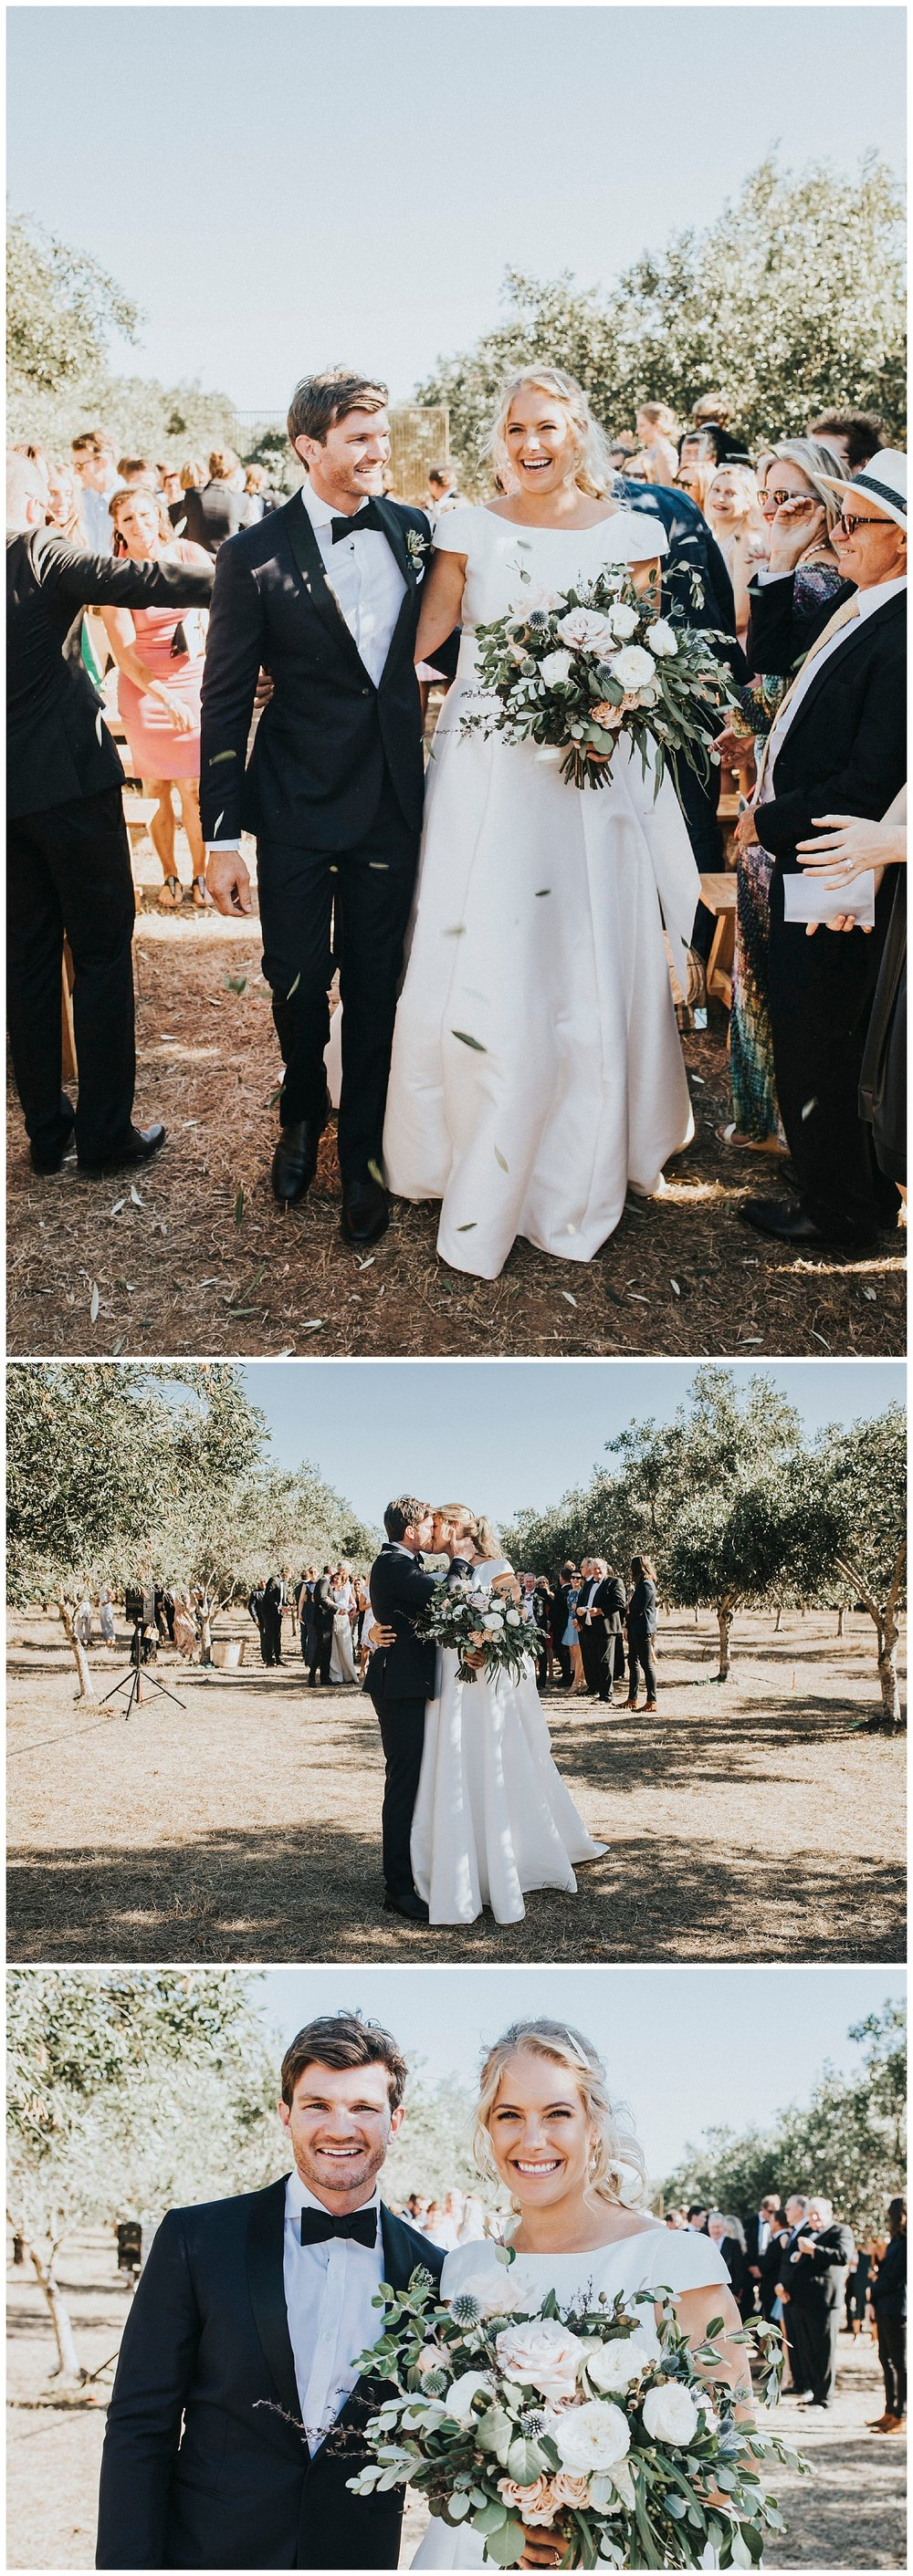 olio_bello_wedding_keeper_creative_015.JPG